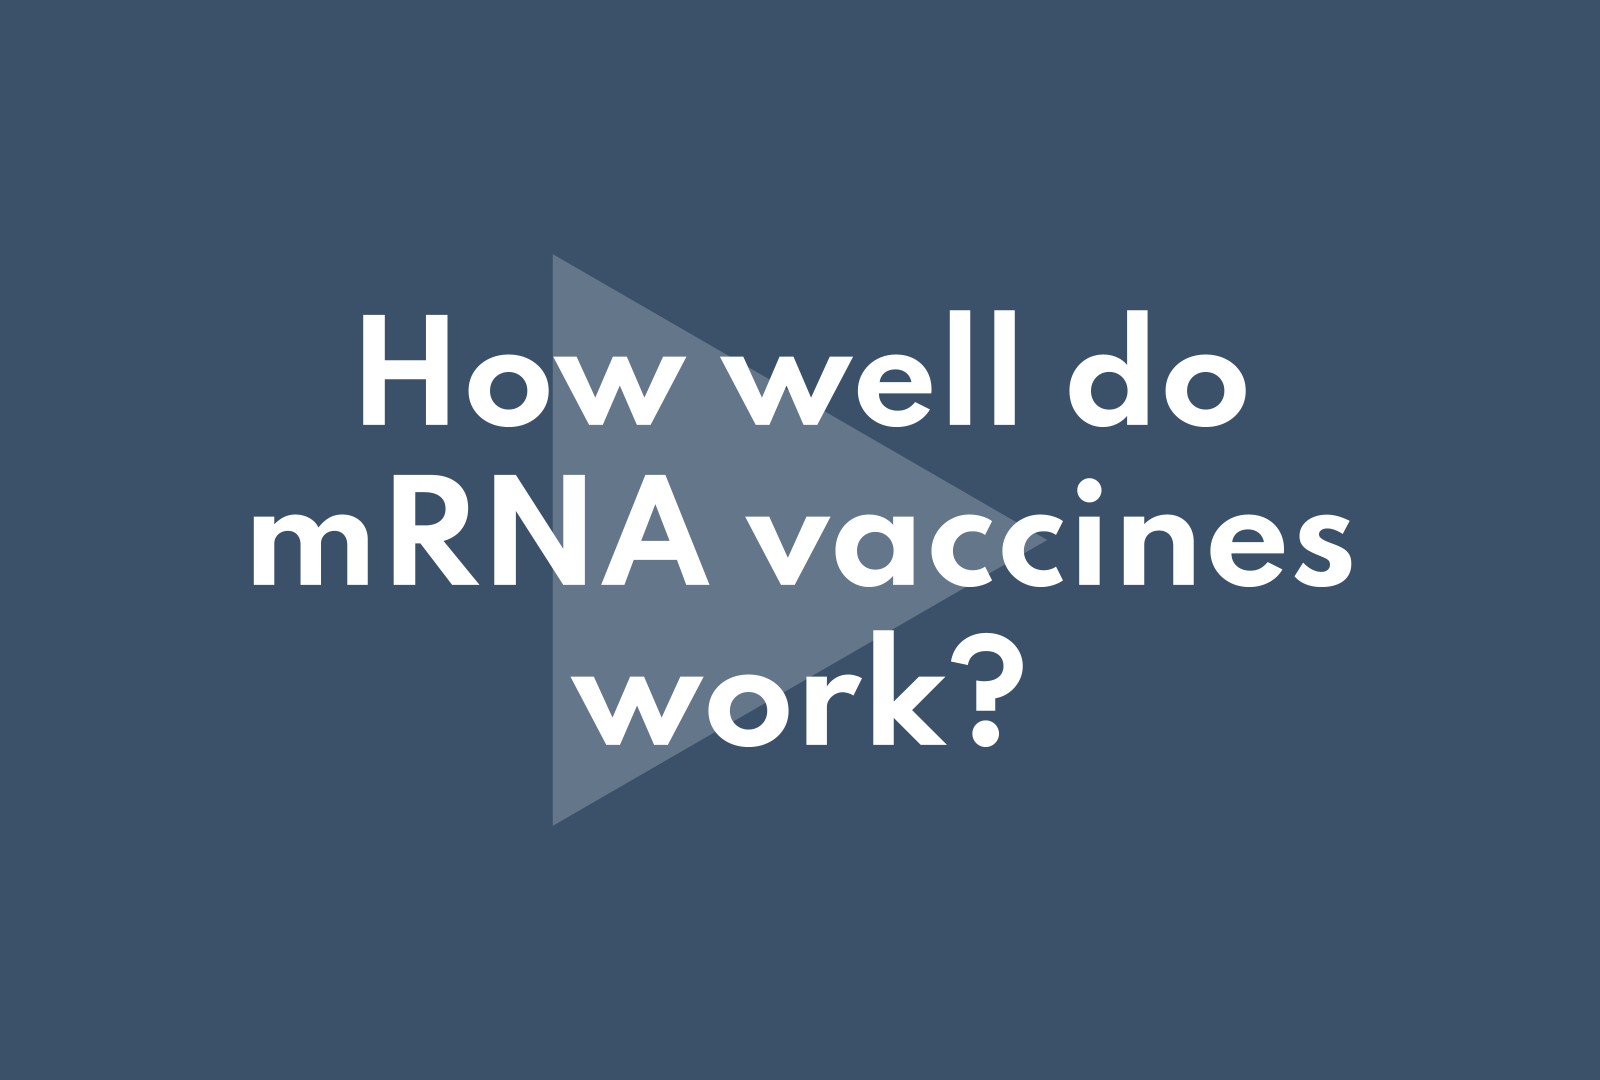 How well do the mRNA vaccines work?